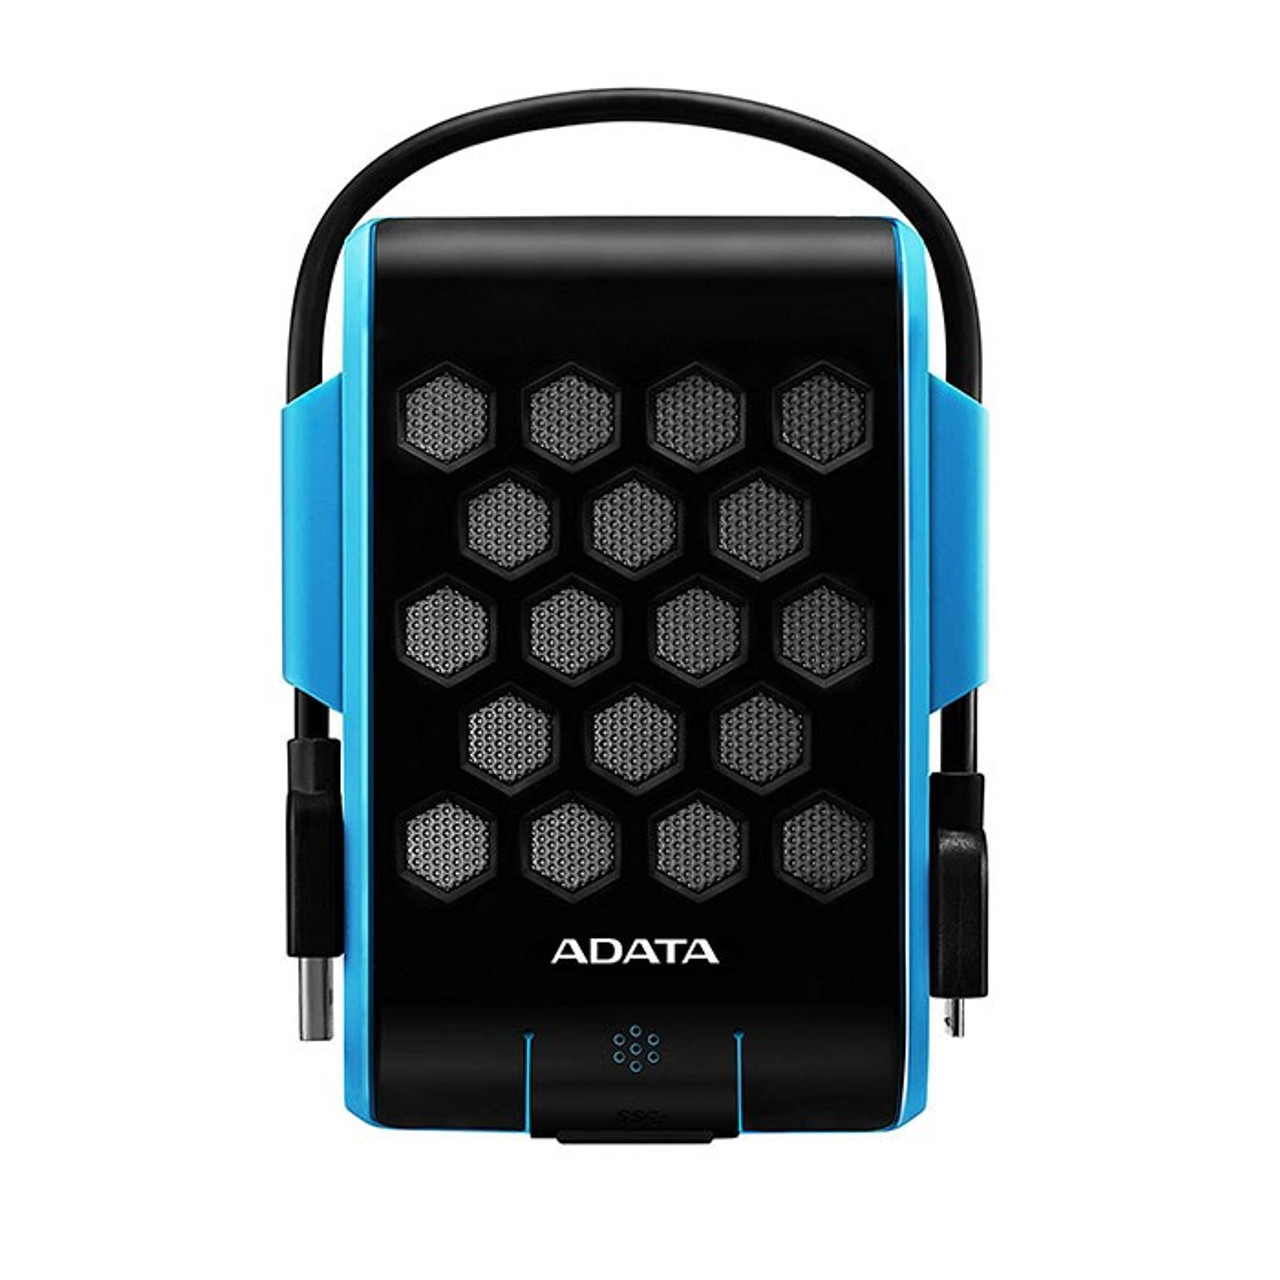 Image for Adata HD720 2TB USB 3.0 Military-Grade Shockproof Portable External HDD - Blue CX Computer Superstore